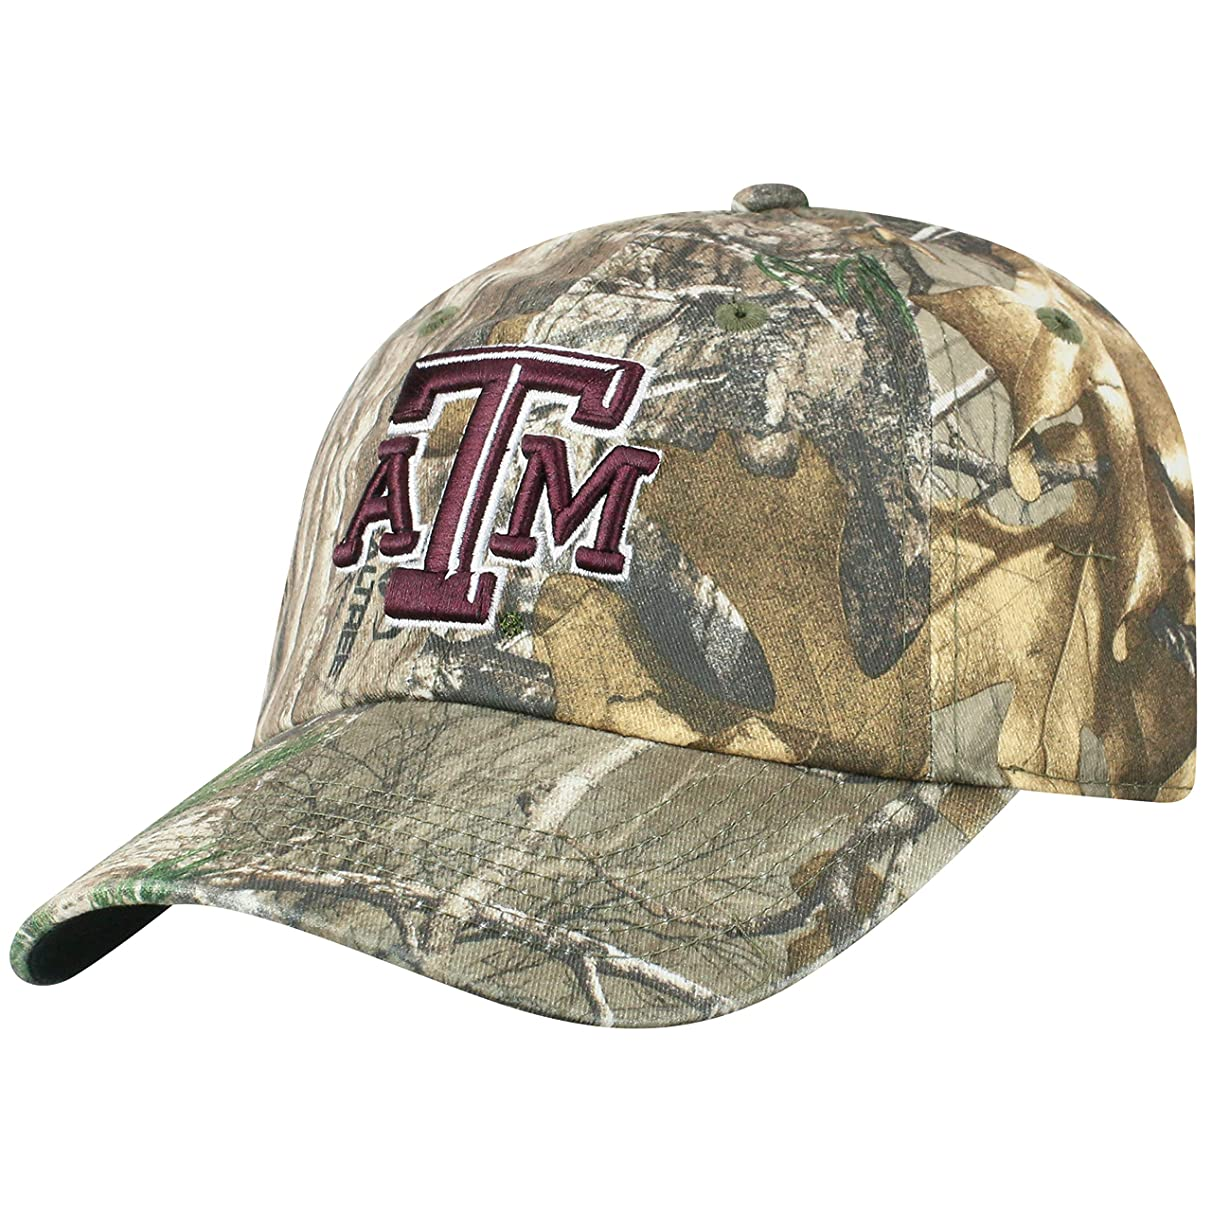 Top of the World NCAA Men's Hat Adjustable Real Tree Camo Icon